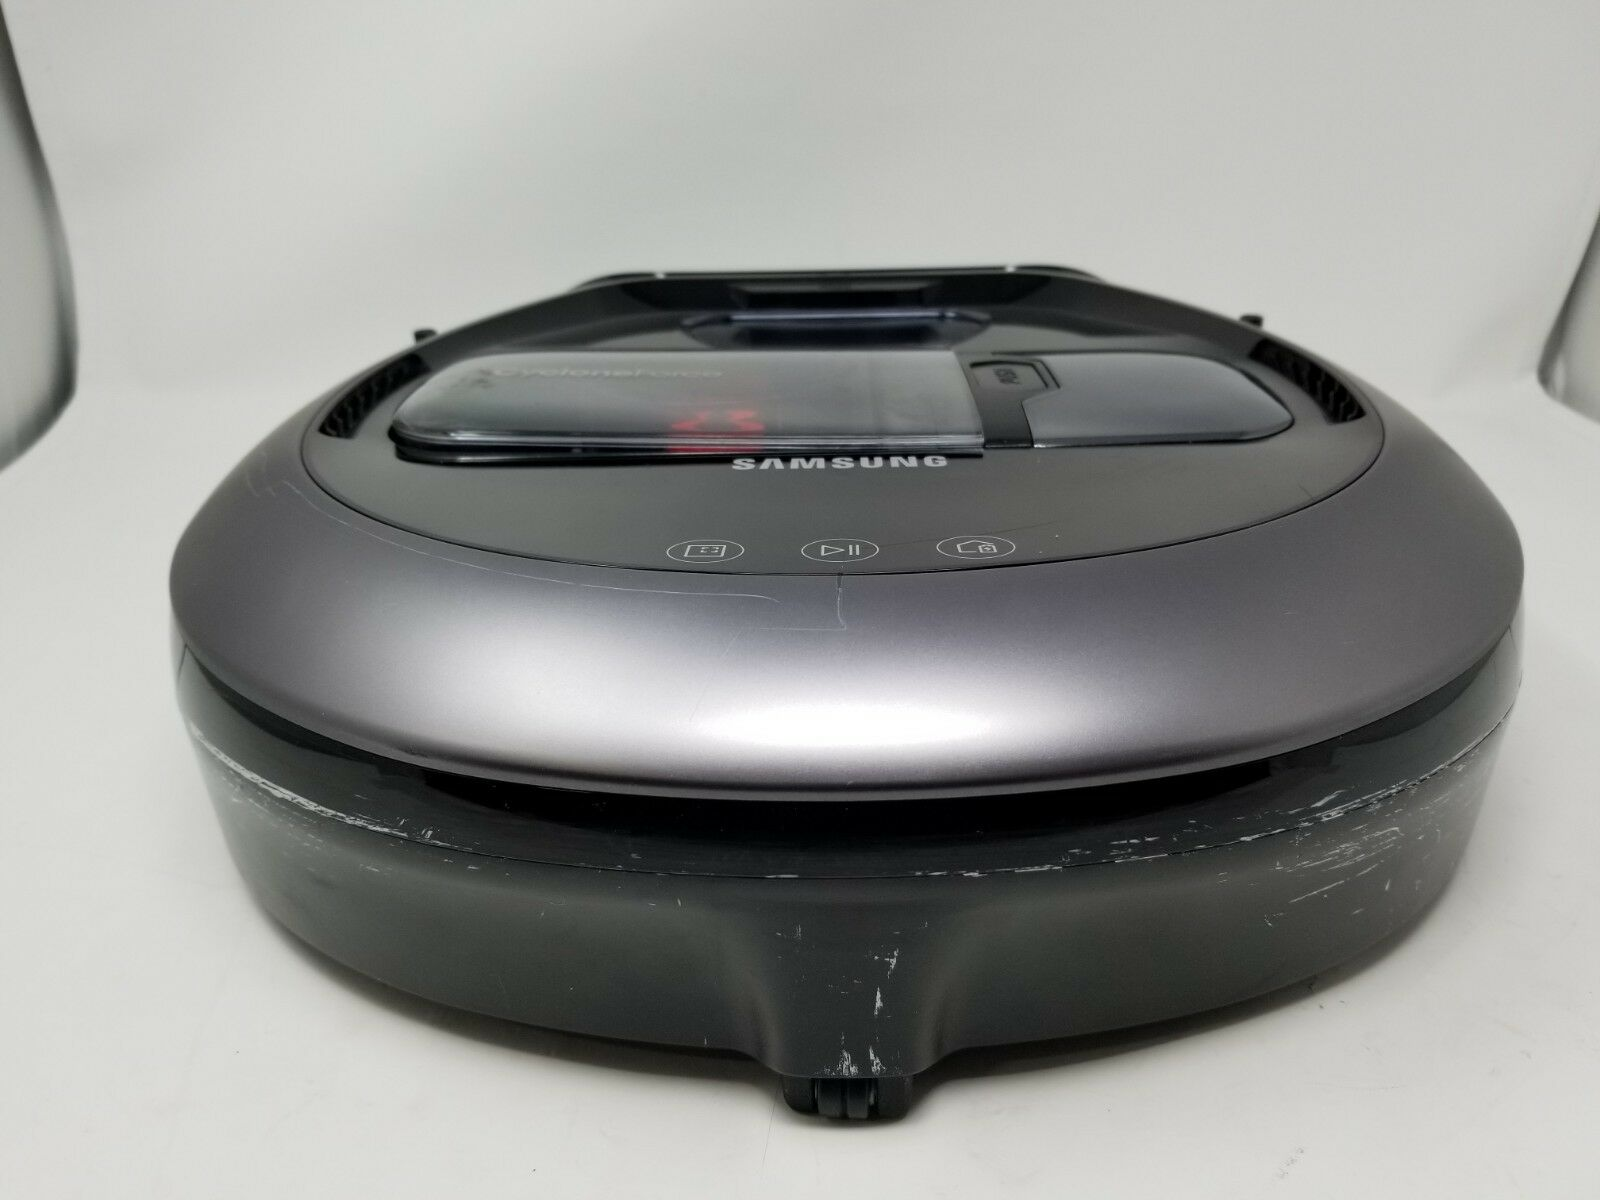 Samsung Powerbot R7040 Robot Vacuum with Edge Clean - Satin - Vacuum Only